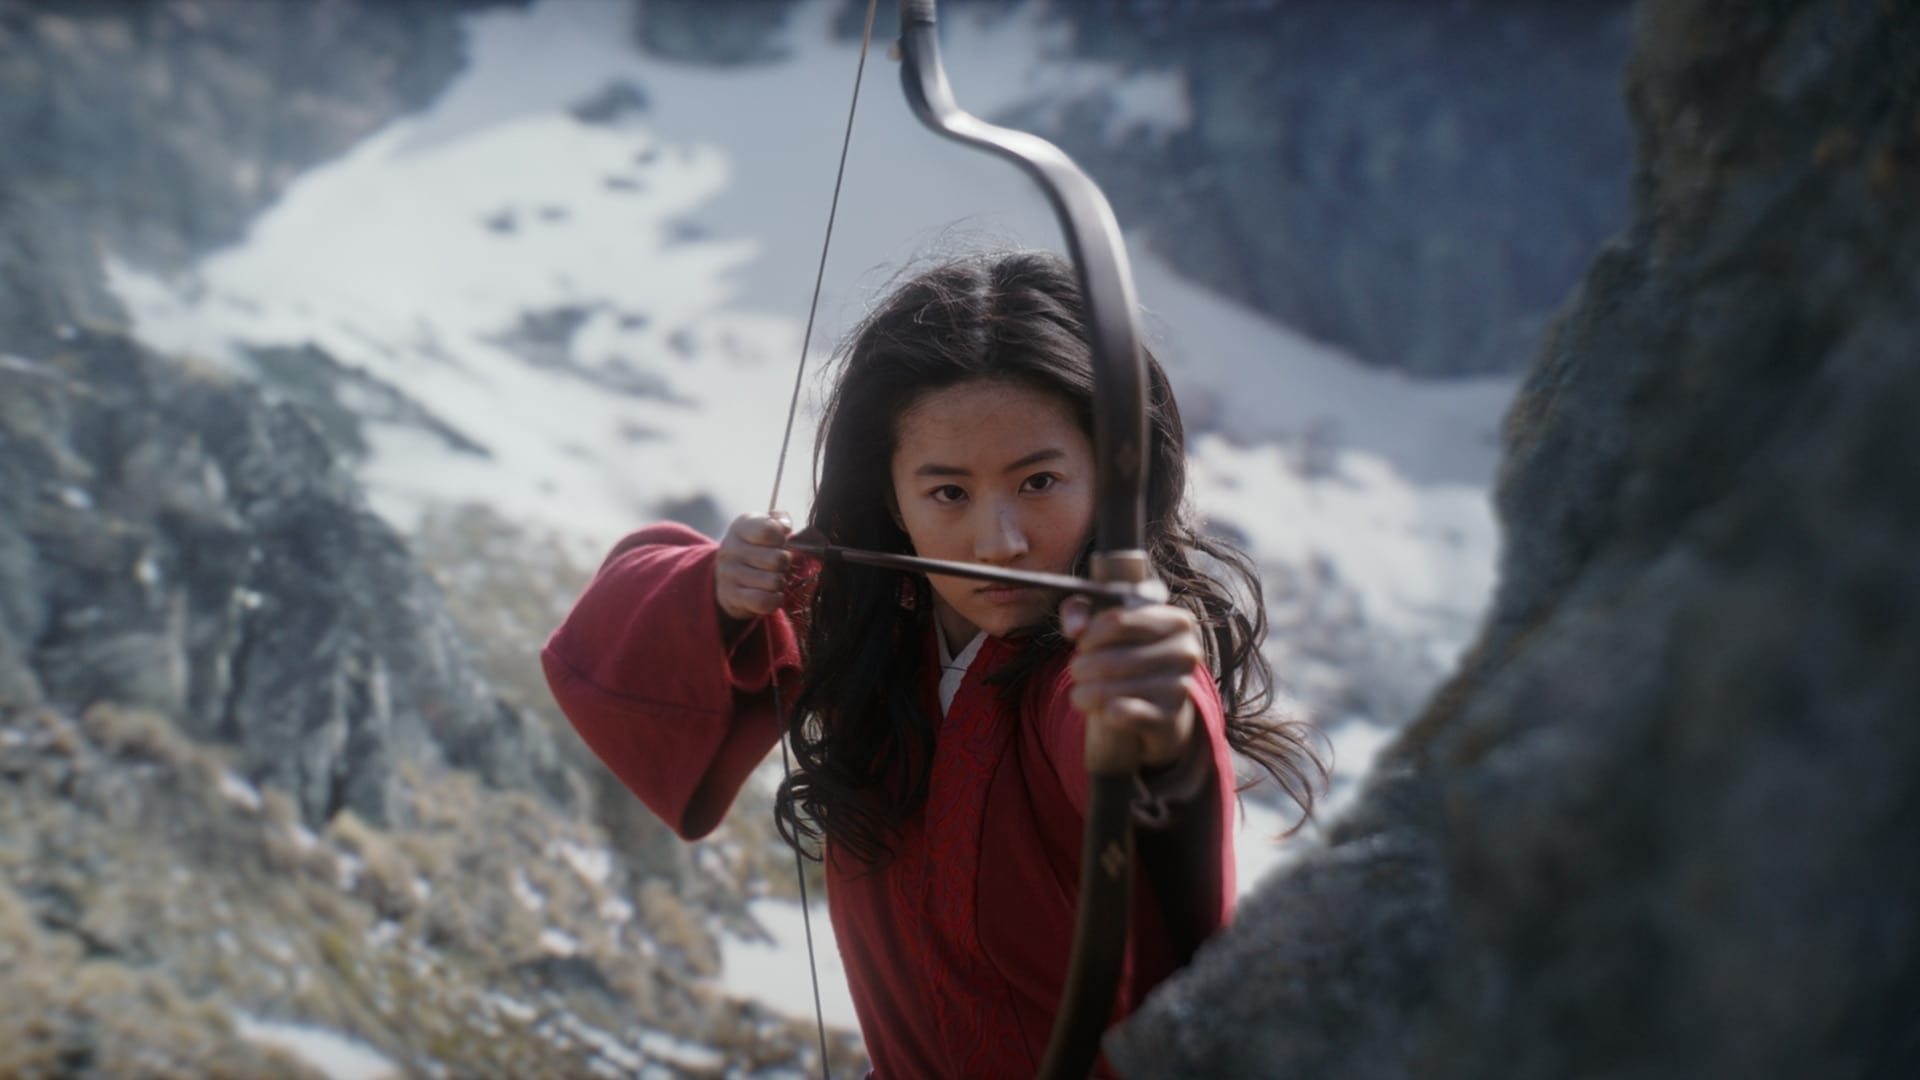 Everything We Know So Far About Mulan From The Cast To The Controversies